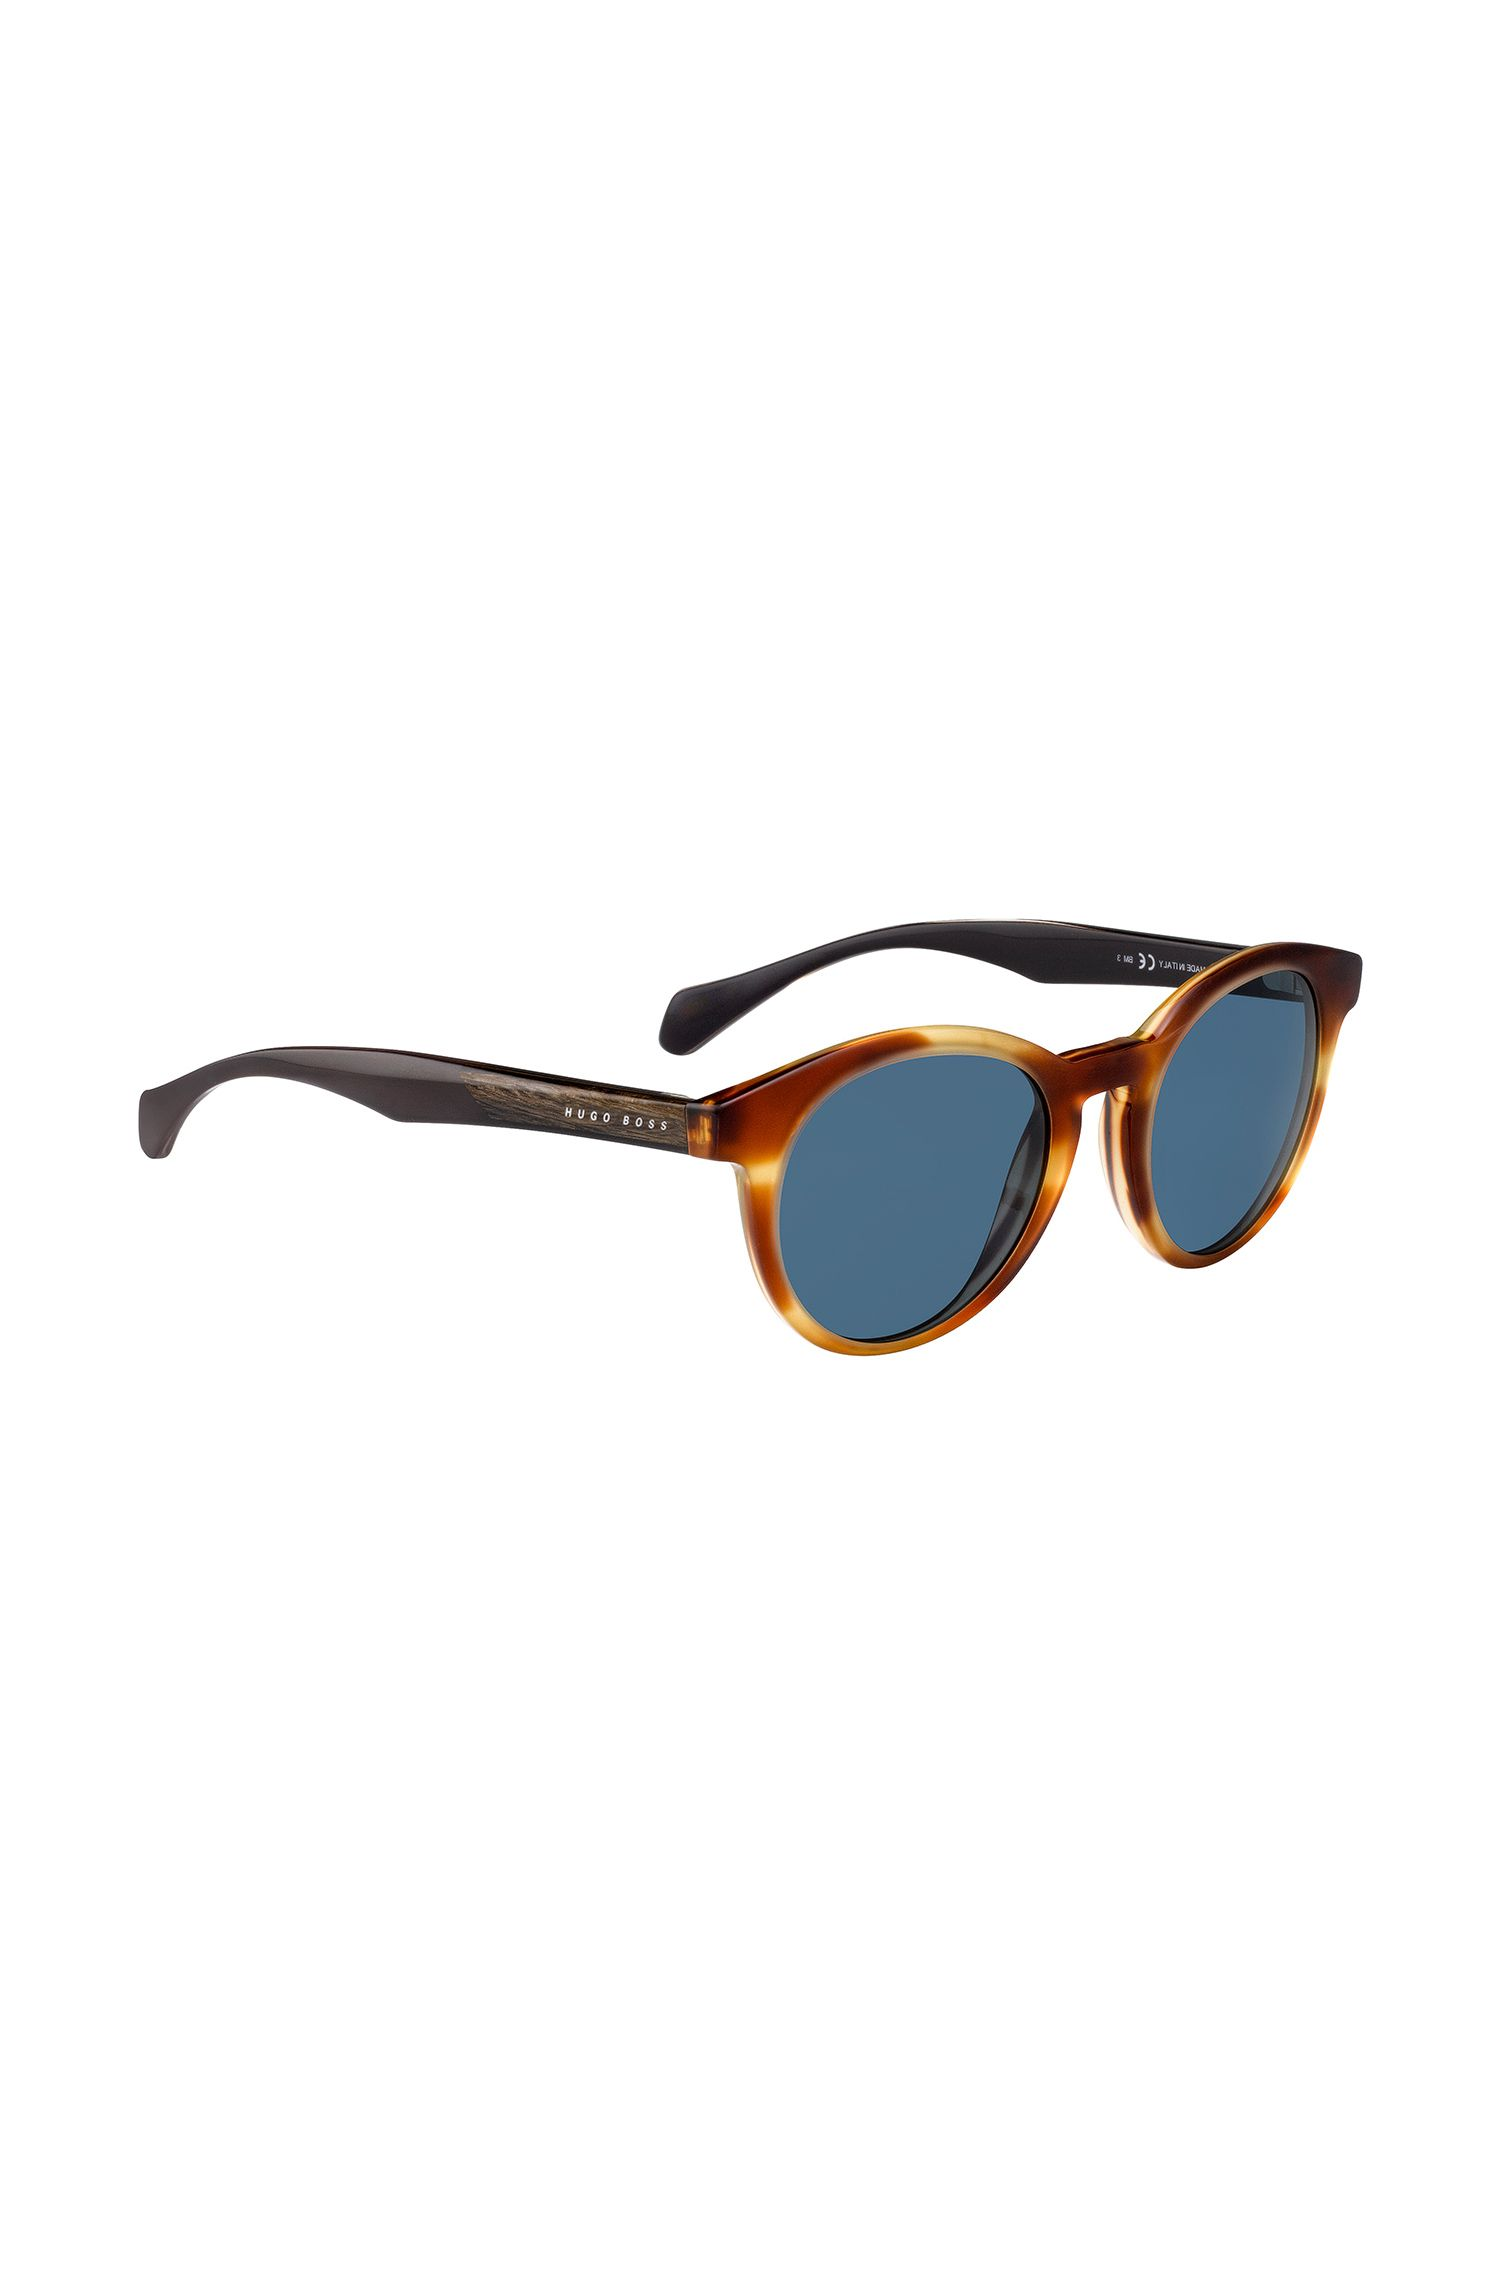 Horn Acetate Round Sunglasses | BOSS 0912/S